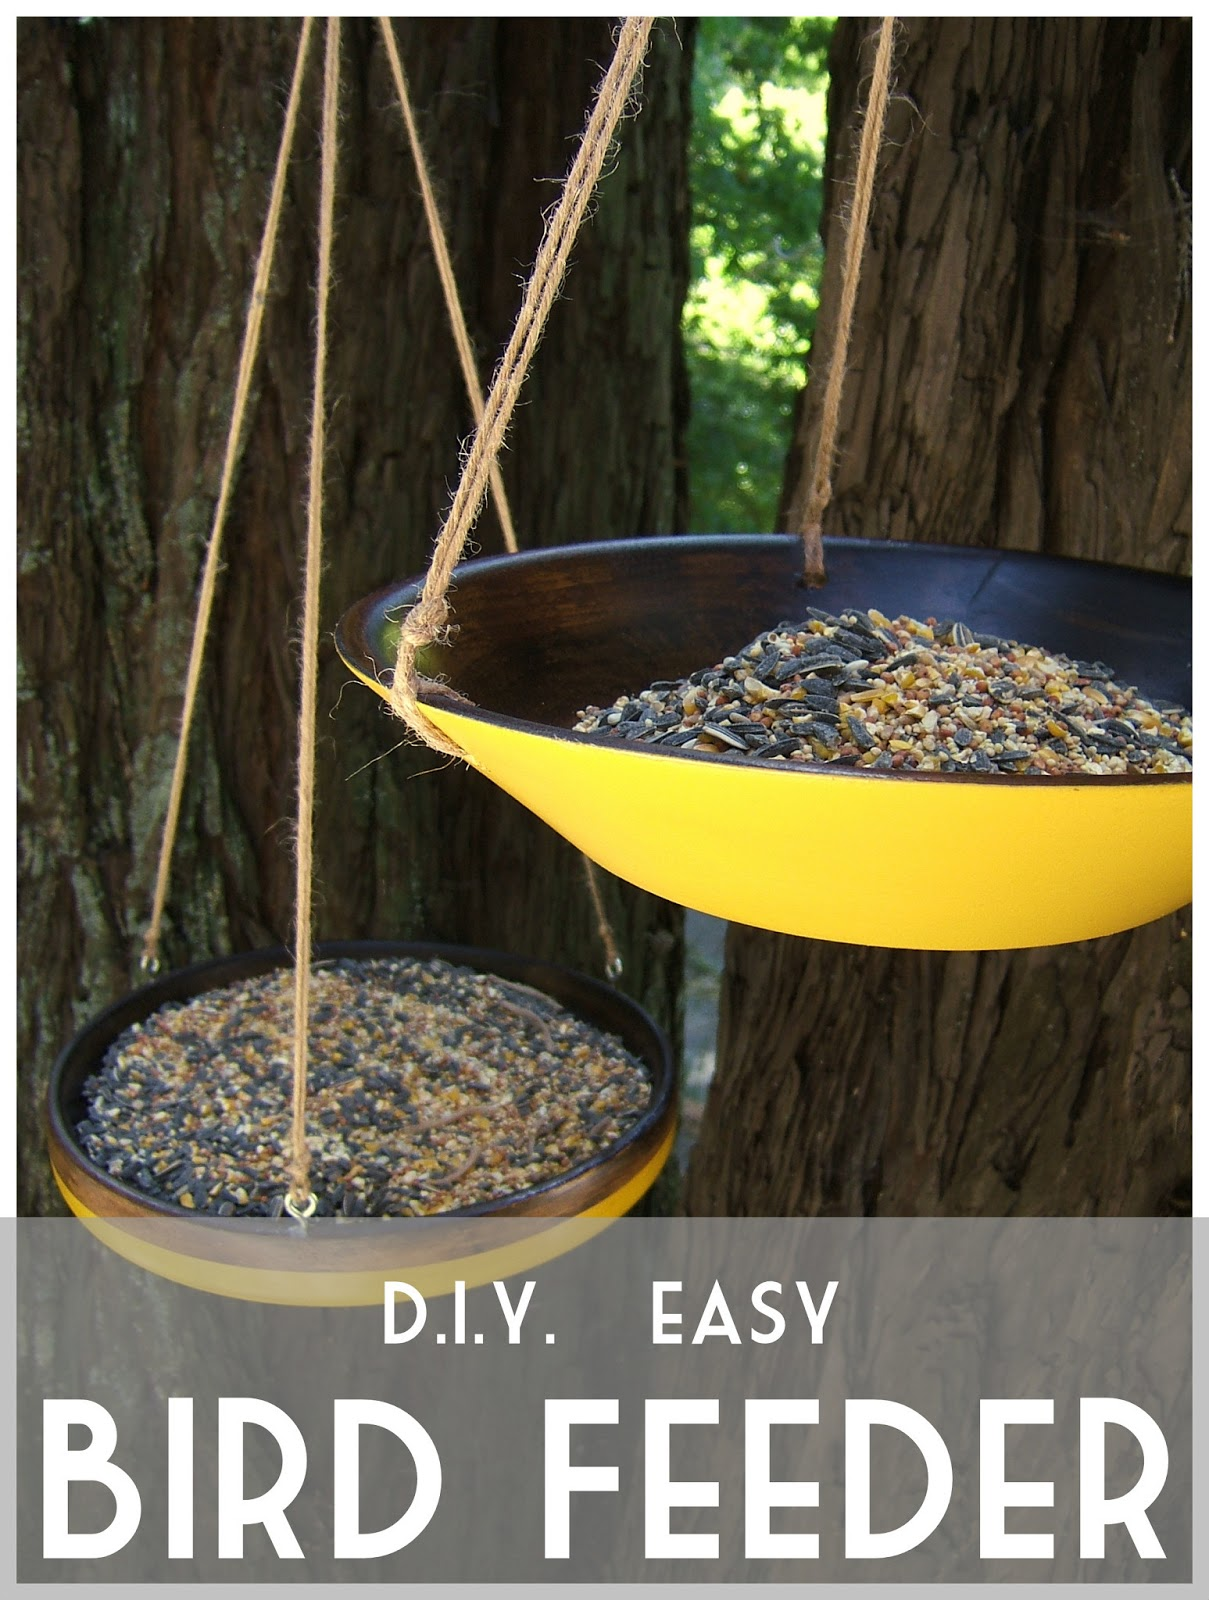 how welcome cheddar diy s feeders build bird scratch spring kitchen shutterstock feeder to